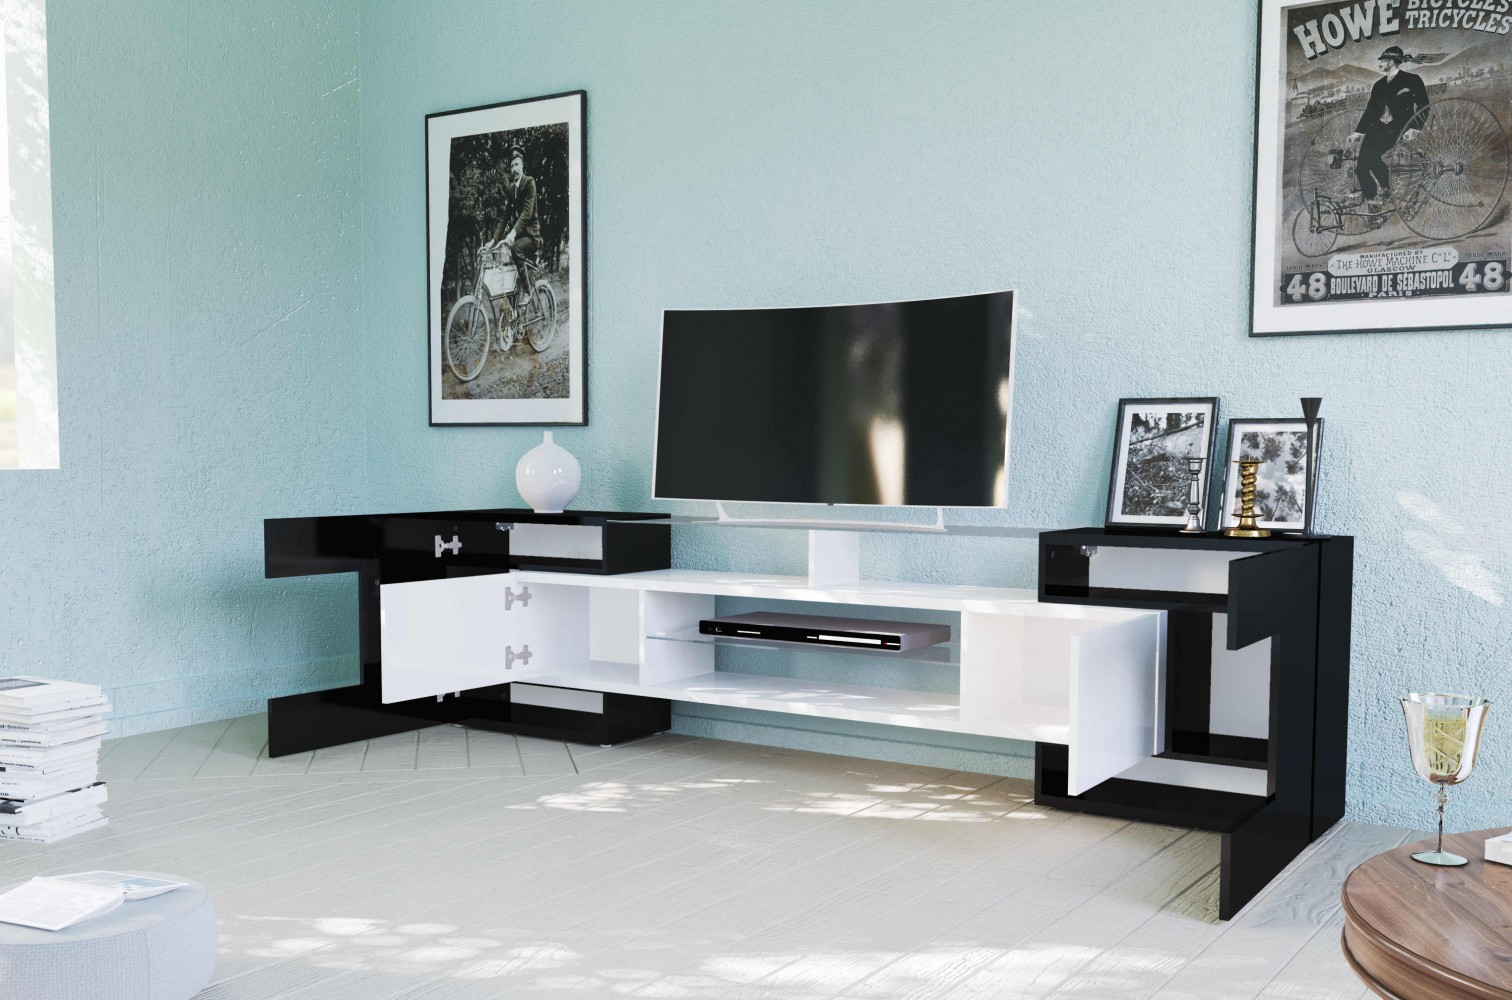 tecnos lowboard slave wei schwarz hochglanz mediawand tv design modern neu ebay. Black Bedroom Furniture Sets. Home Design Ideas